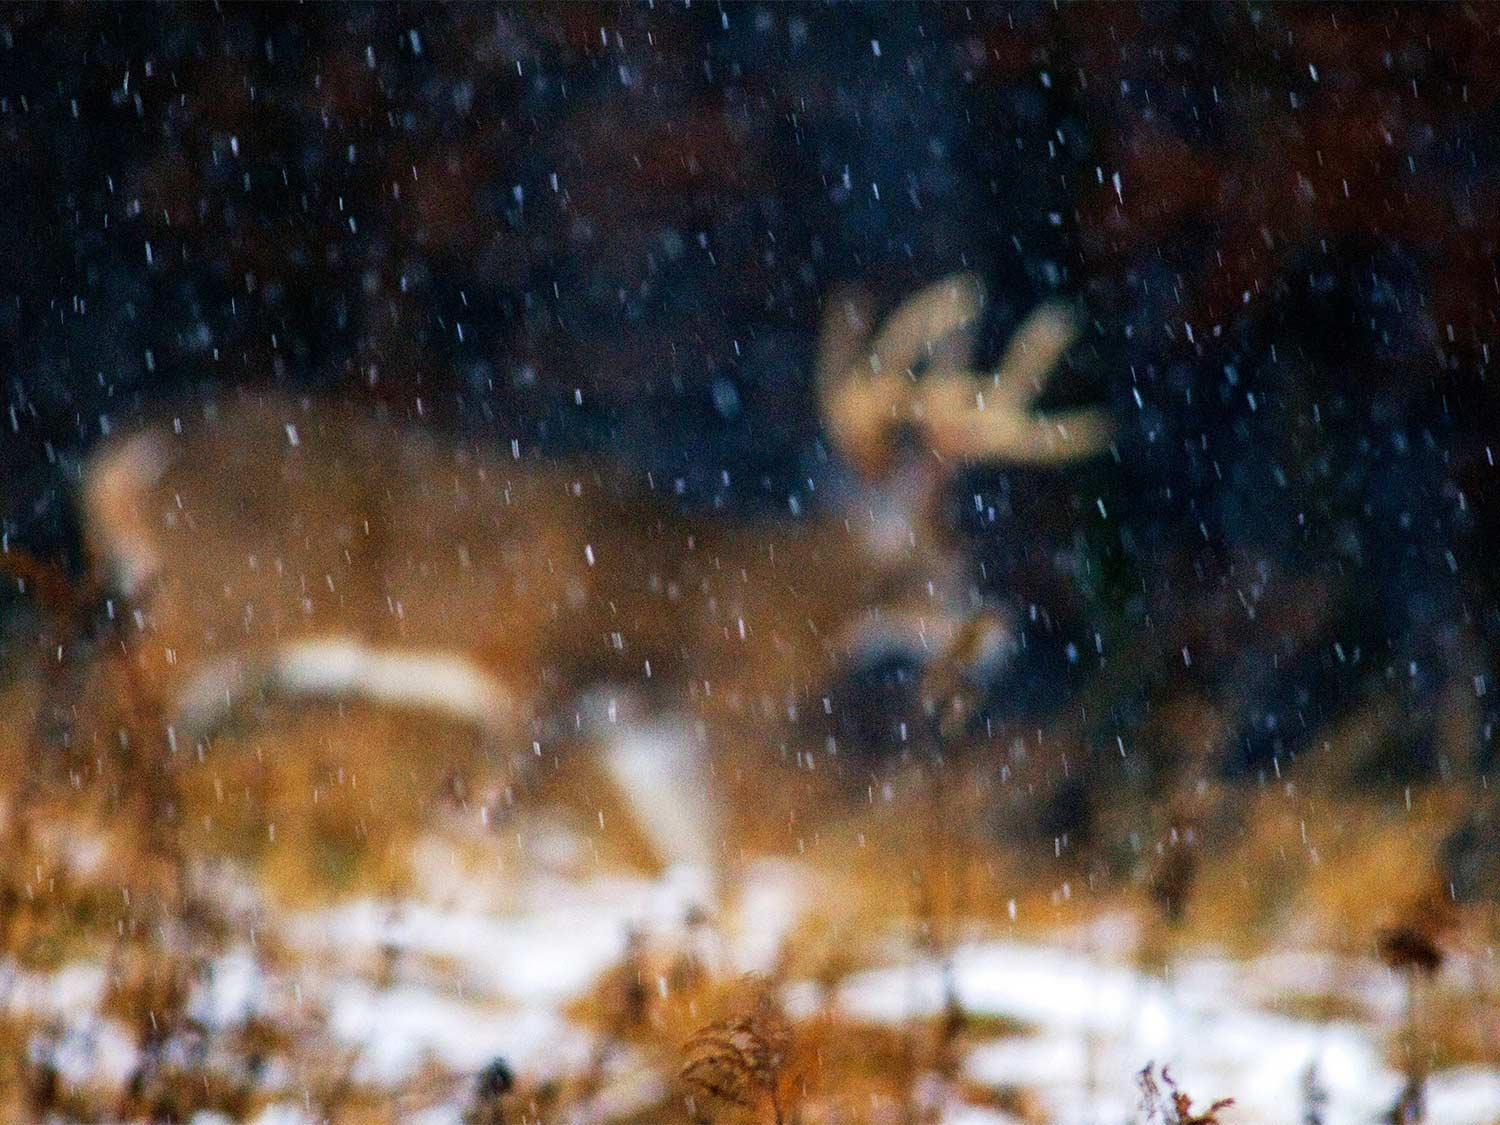 A whitetail deer in the snow.